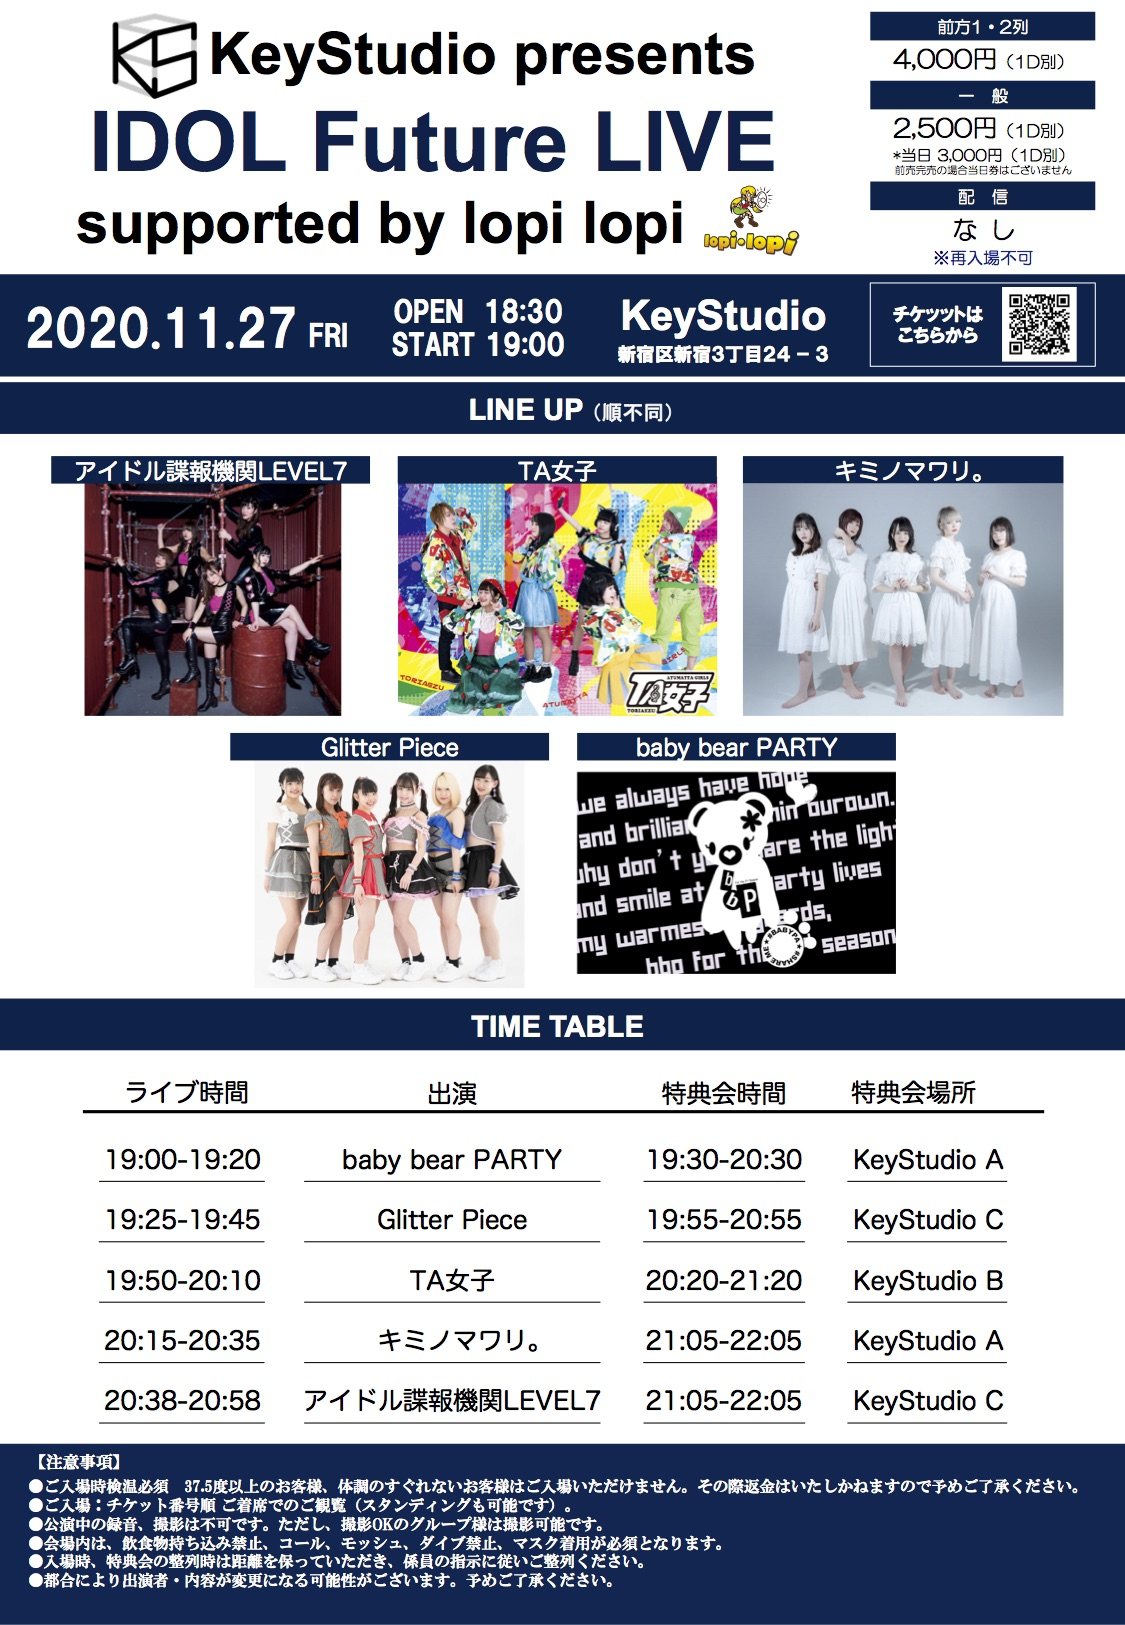 KeyStudio Presents IDOL Future LIVE supported by lopi lopi 1127